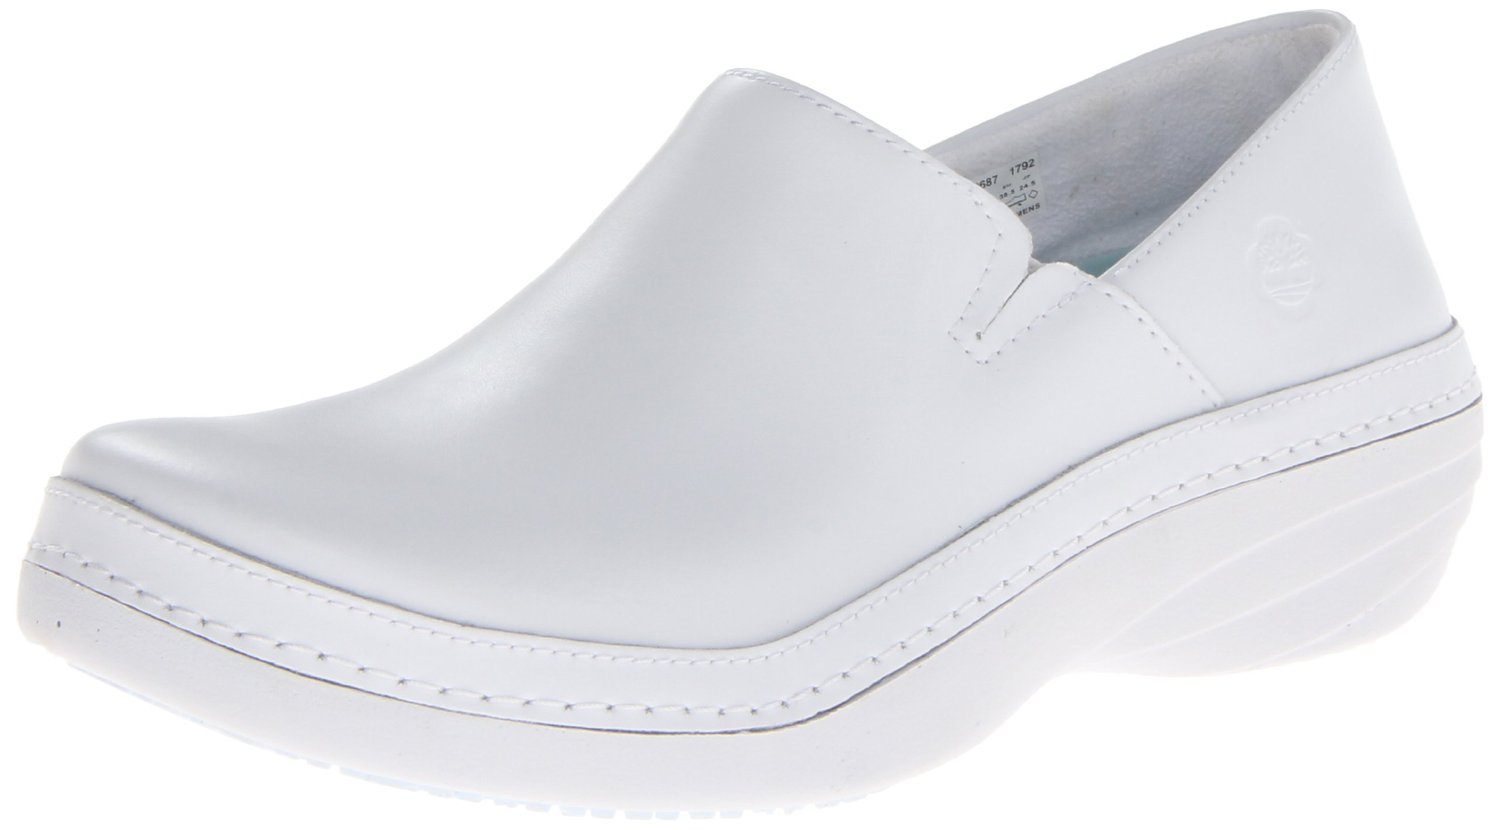 Timberland Professional Women's Renova Slip-On Review & Verdict